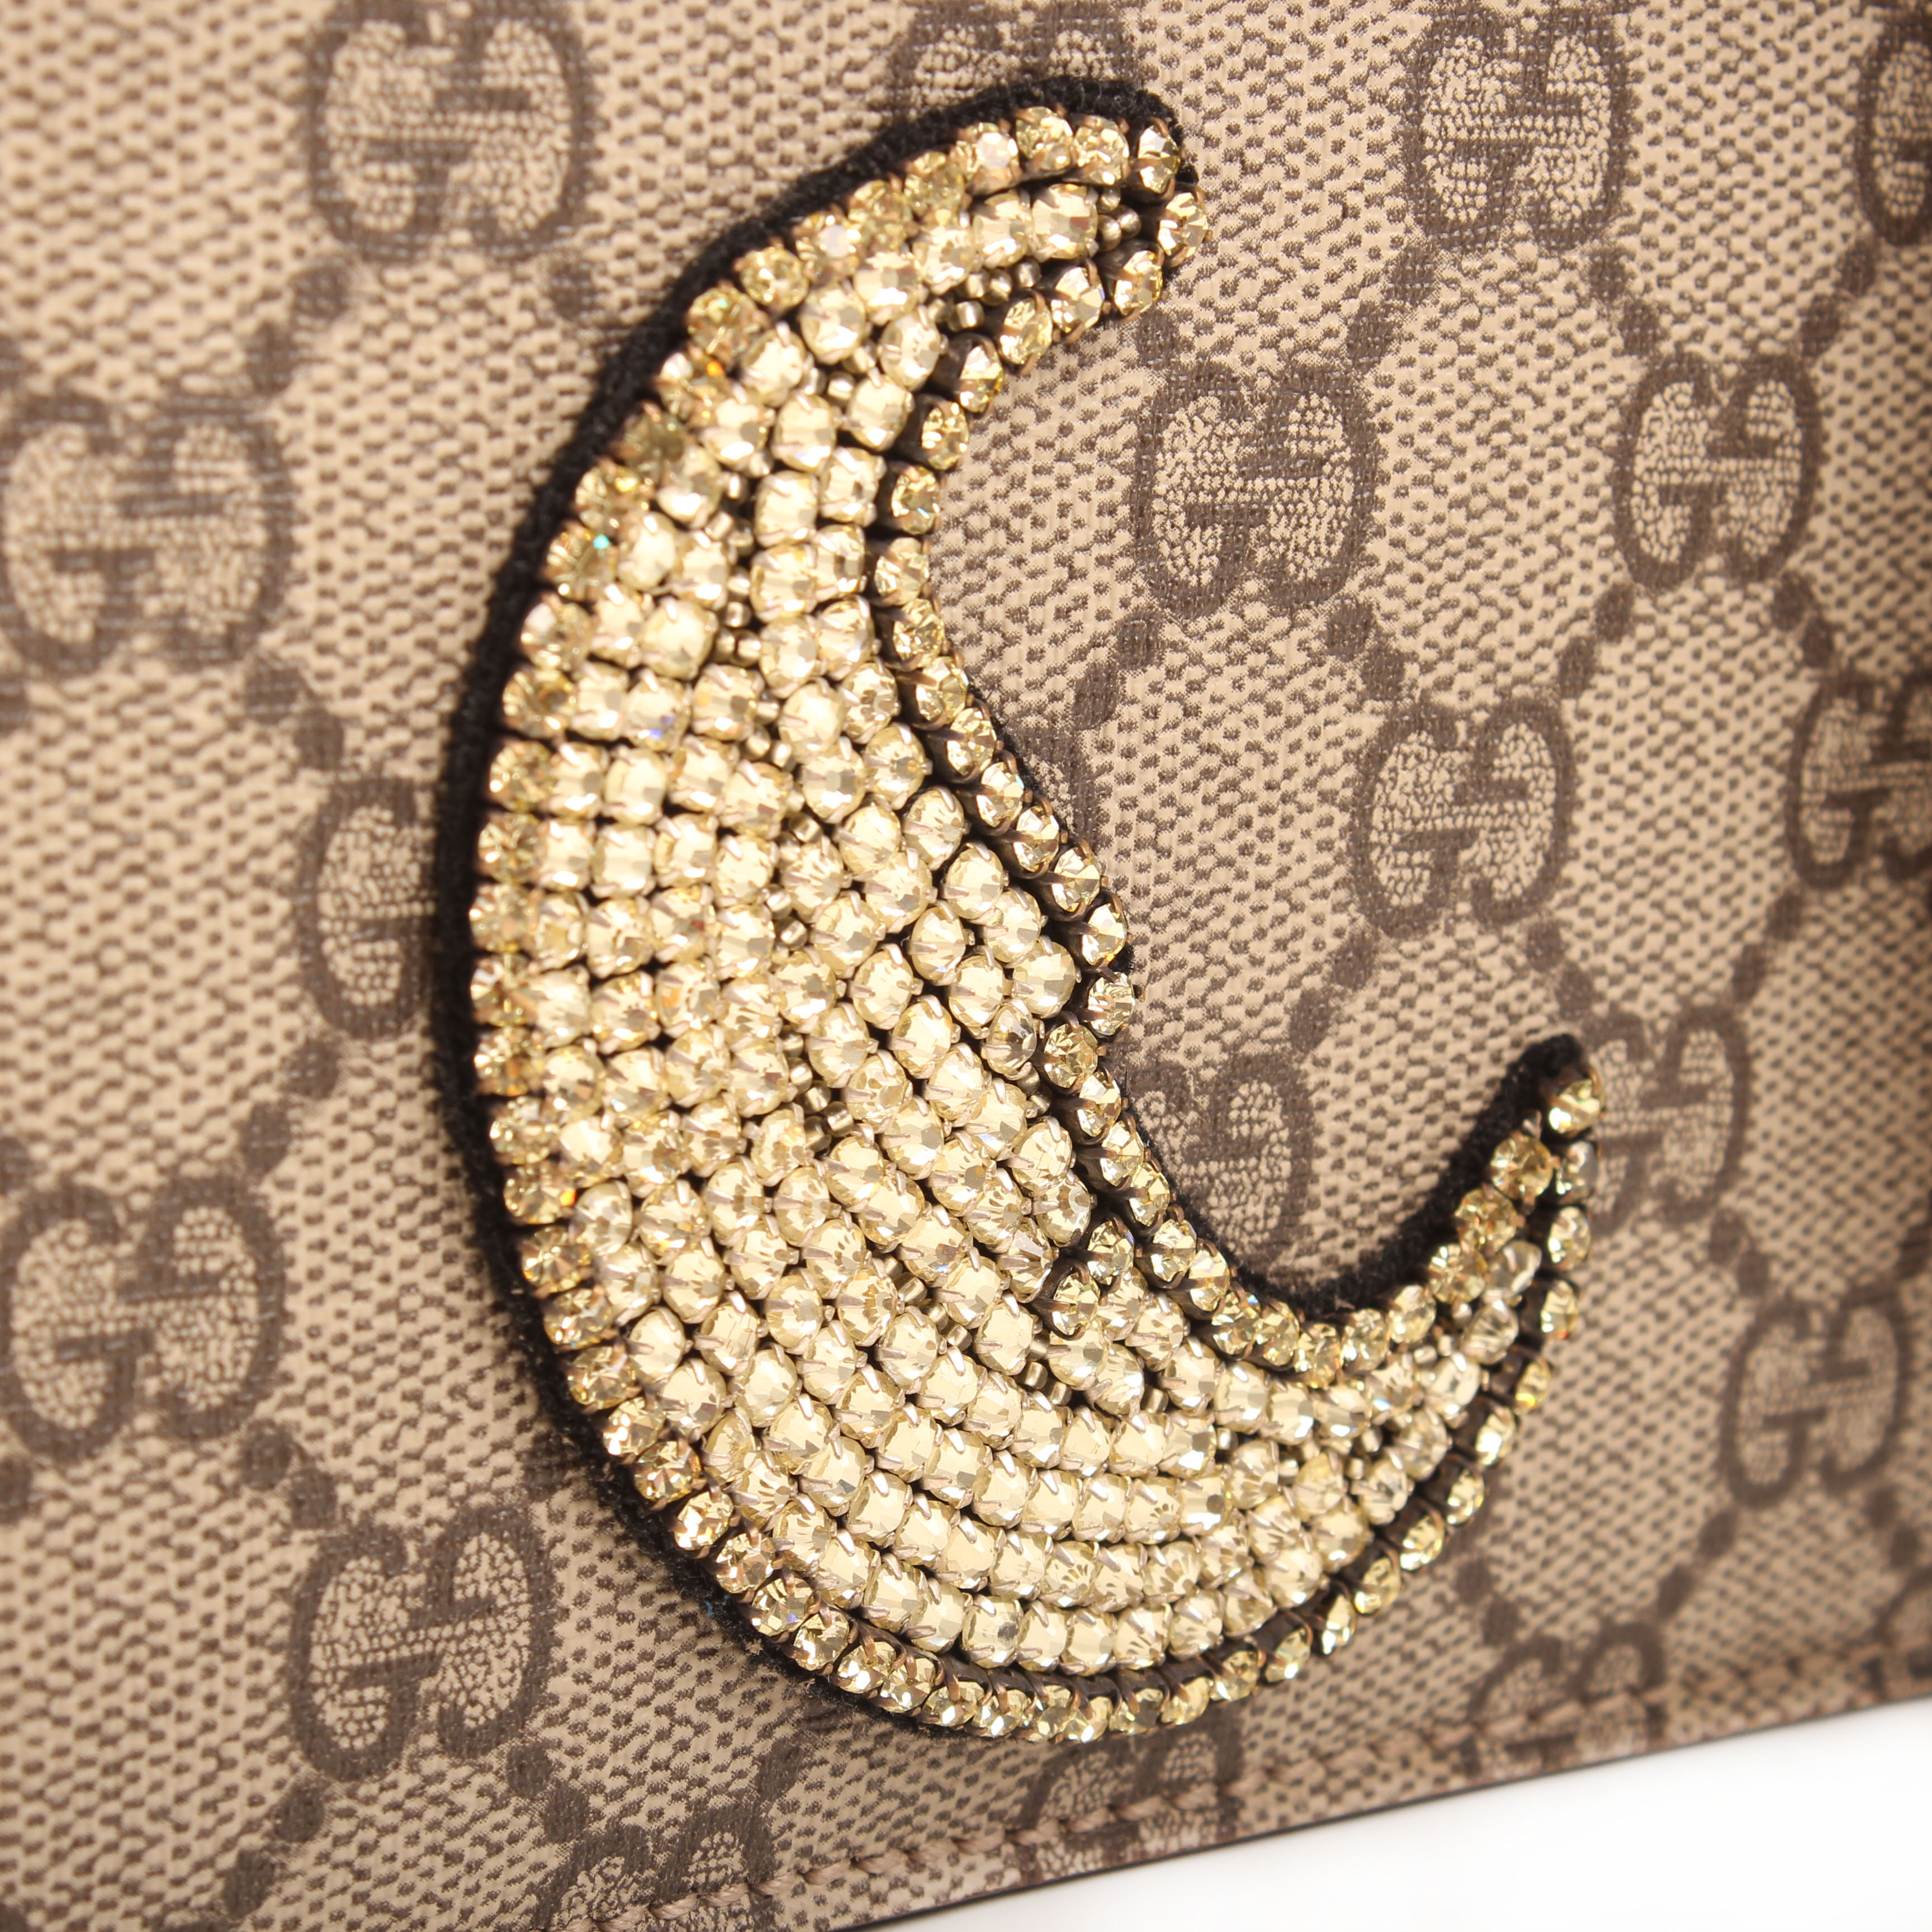 gucci shoulder bag dionysus embroidered rhinestones suede taupe gg supreme canvas moon